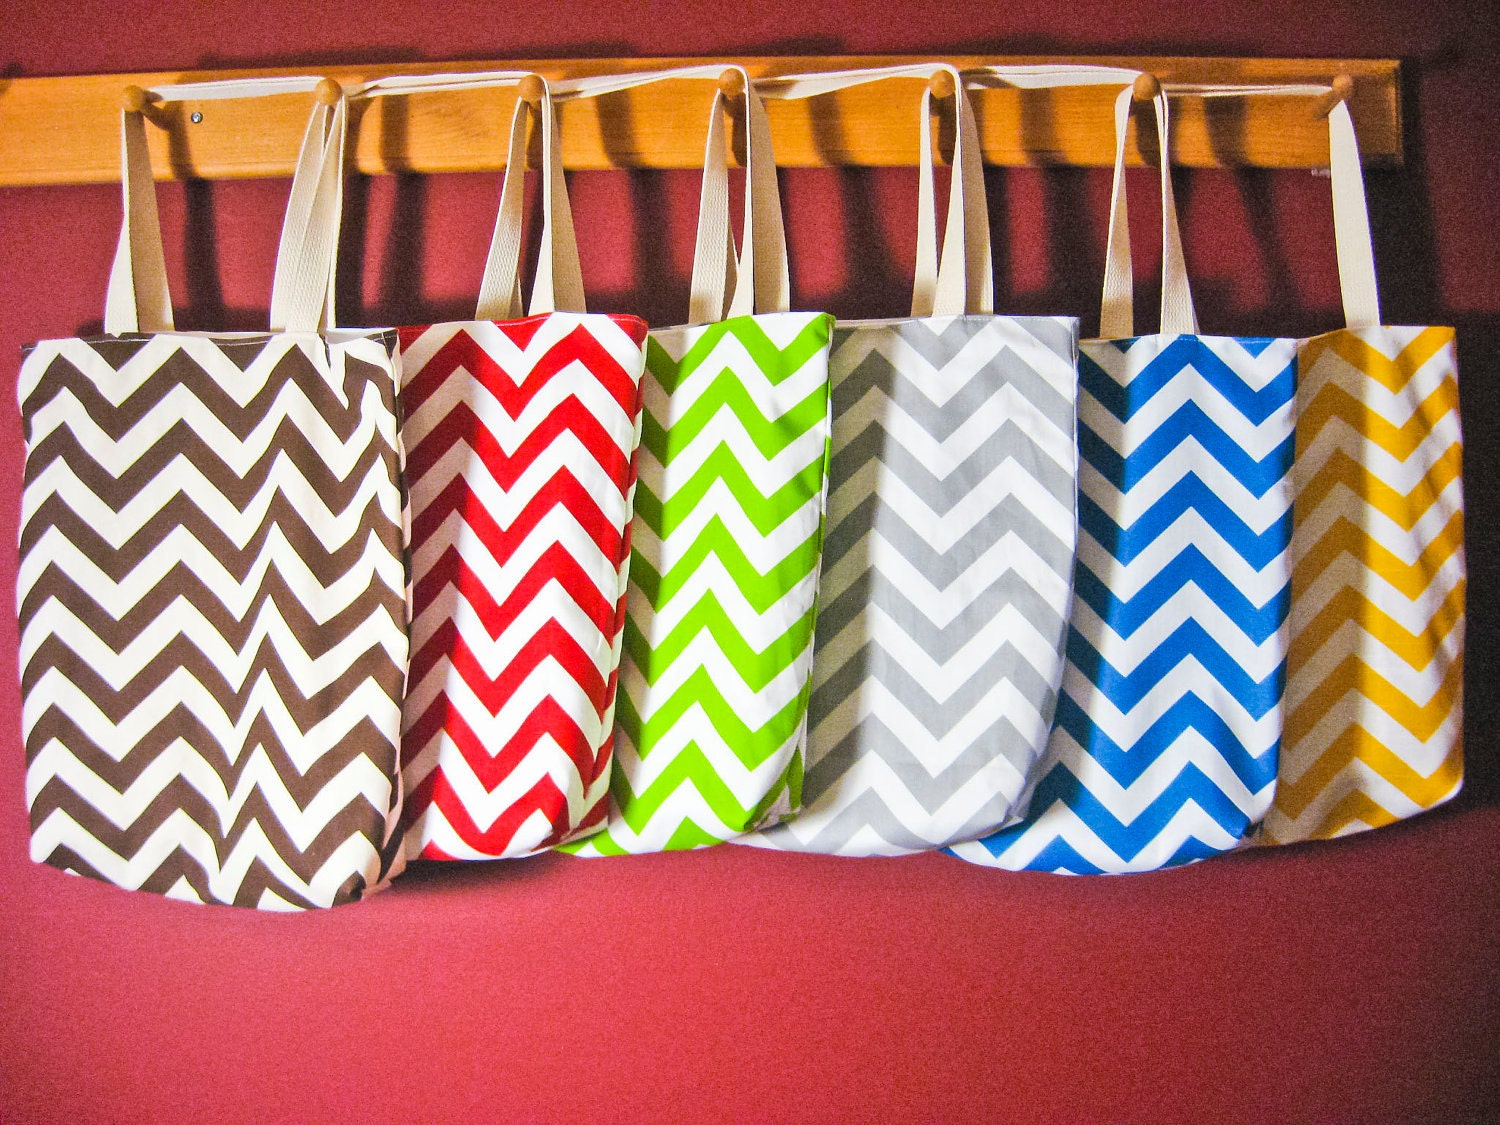 Bridesmaid gifts -  6 Small Chevron Beach Totes, welcome bags, wedding favors, MAID of HONOR